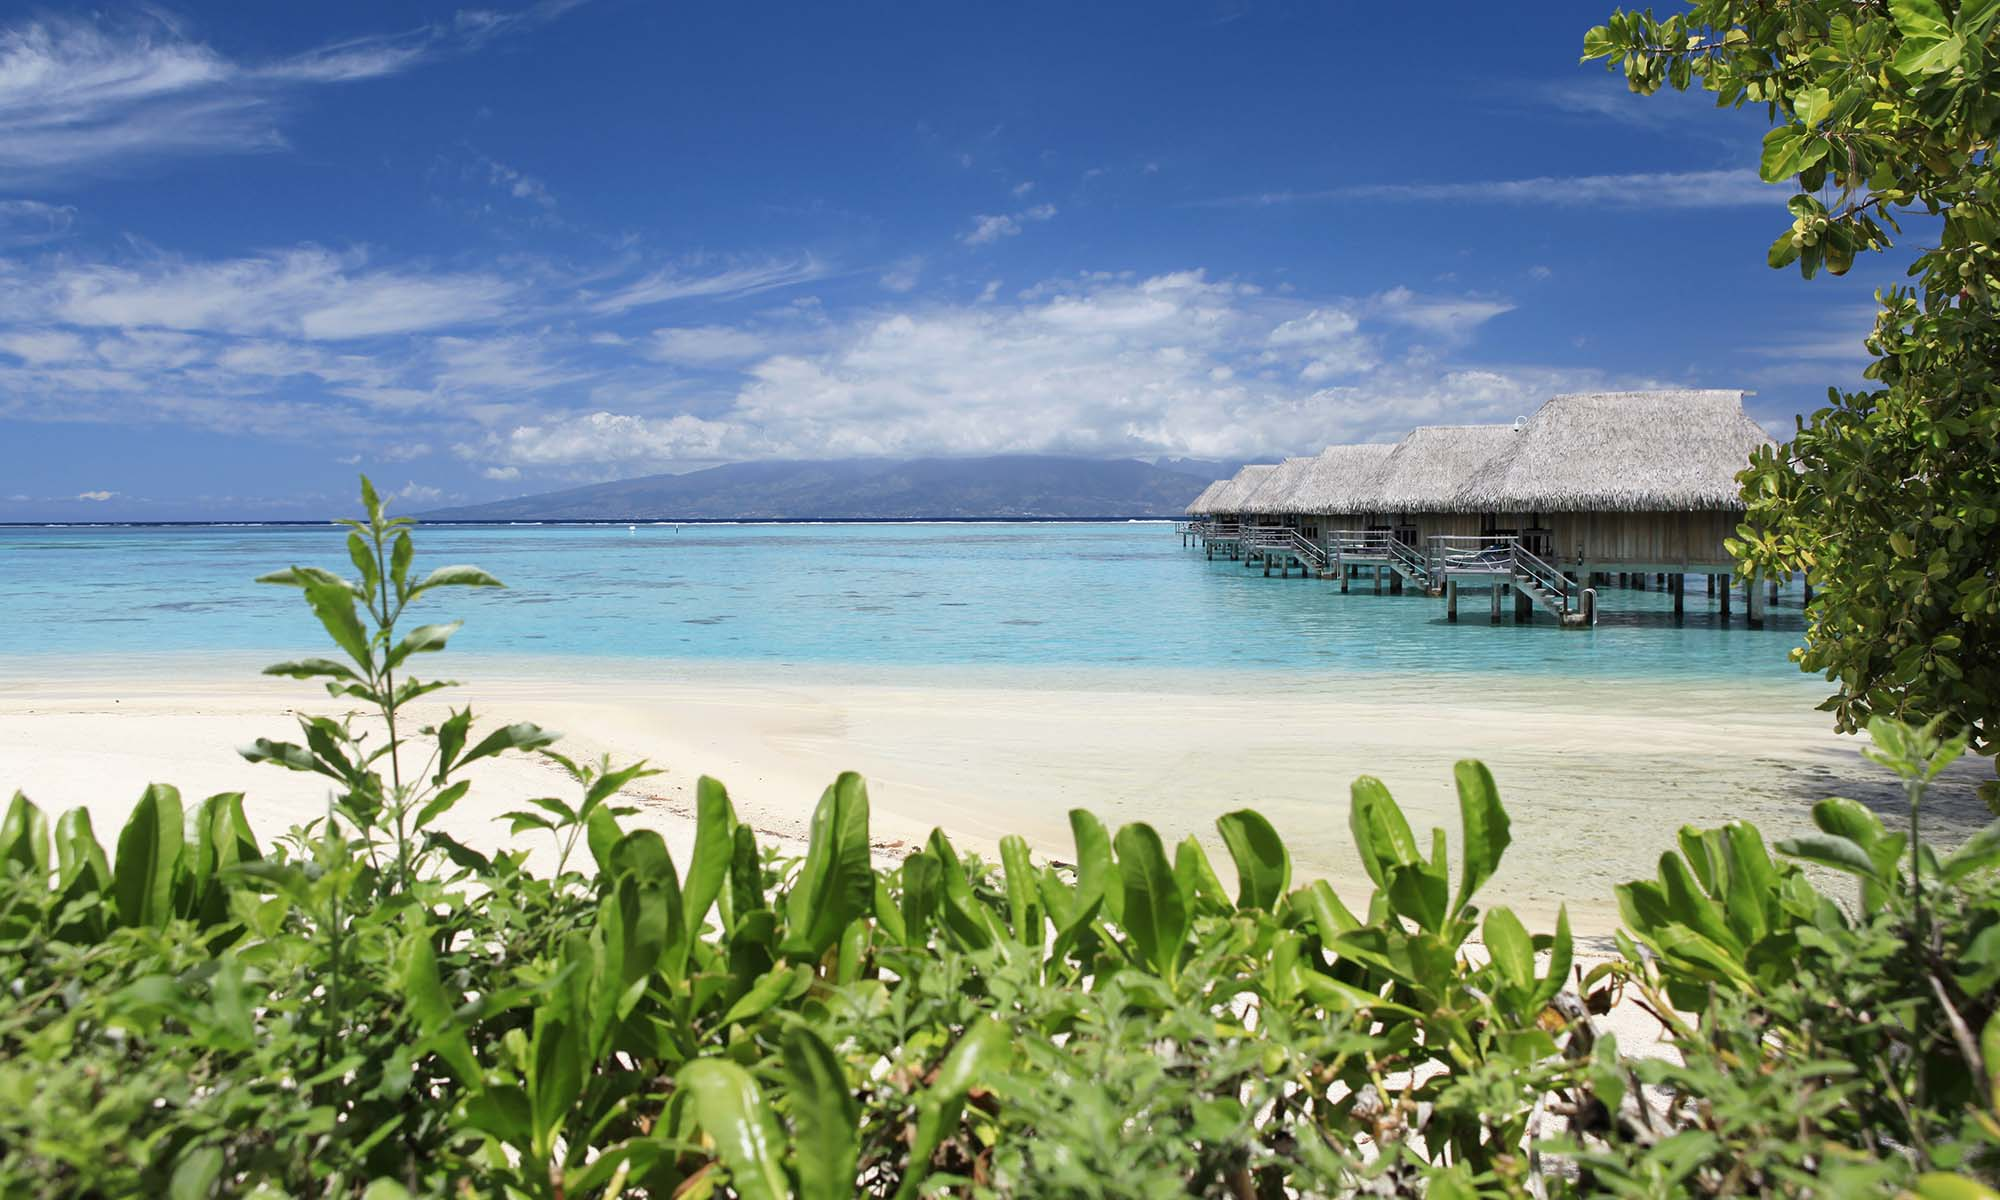 Sofitel Moorea Ia Ora Beach Resort, Spa View